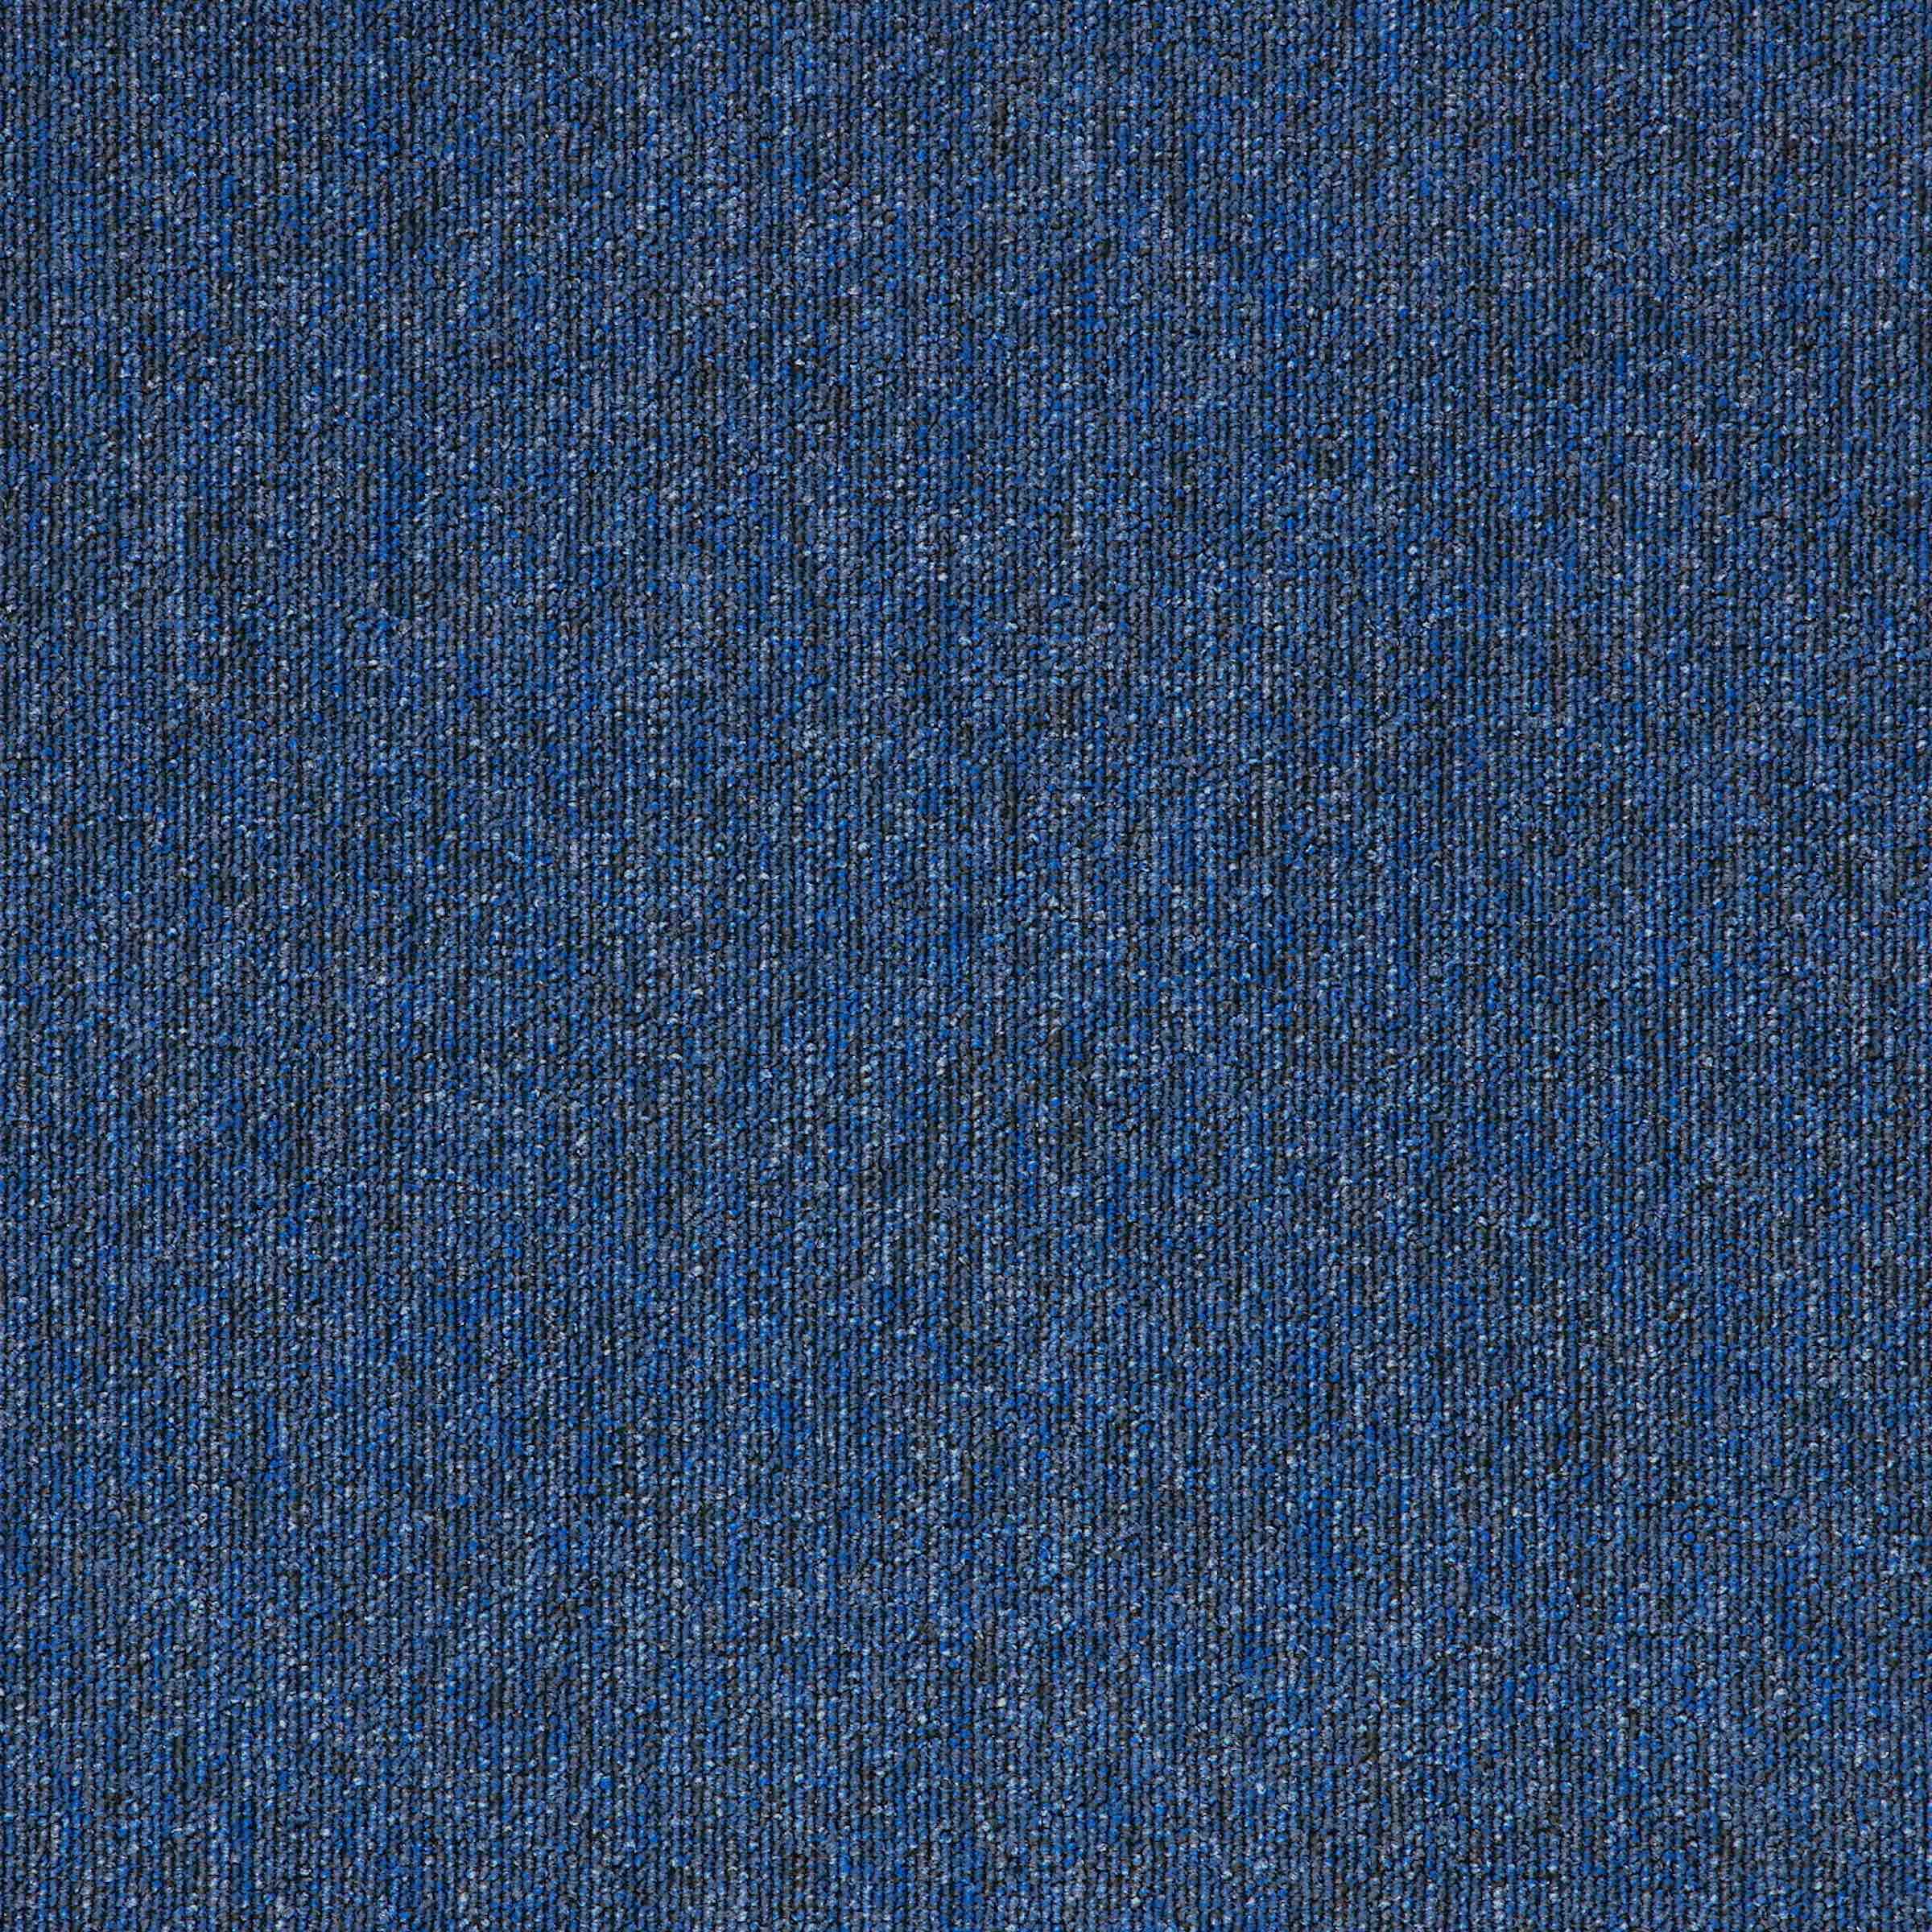 Macaw | Sapphire | Paragon Carpet Tiles | Commercial Carpet Tiles